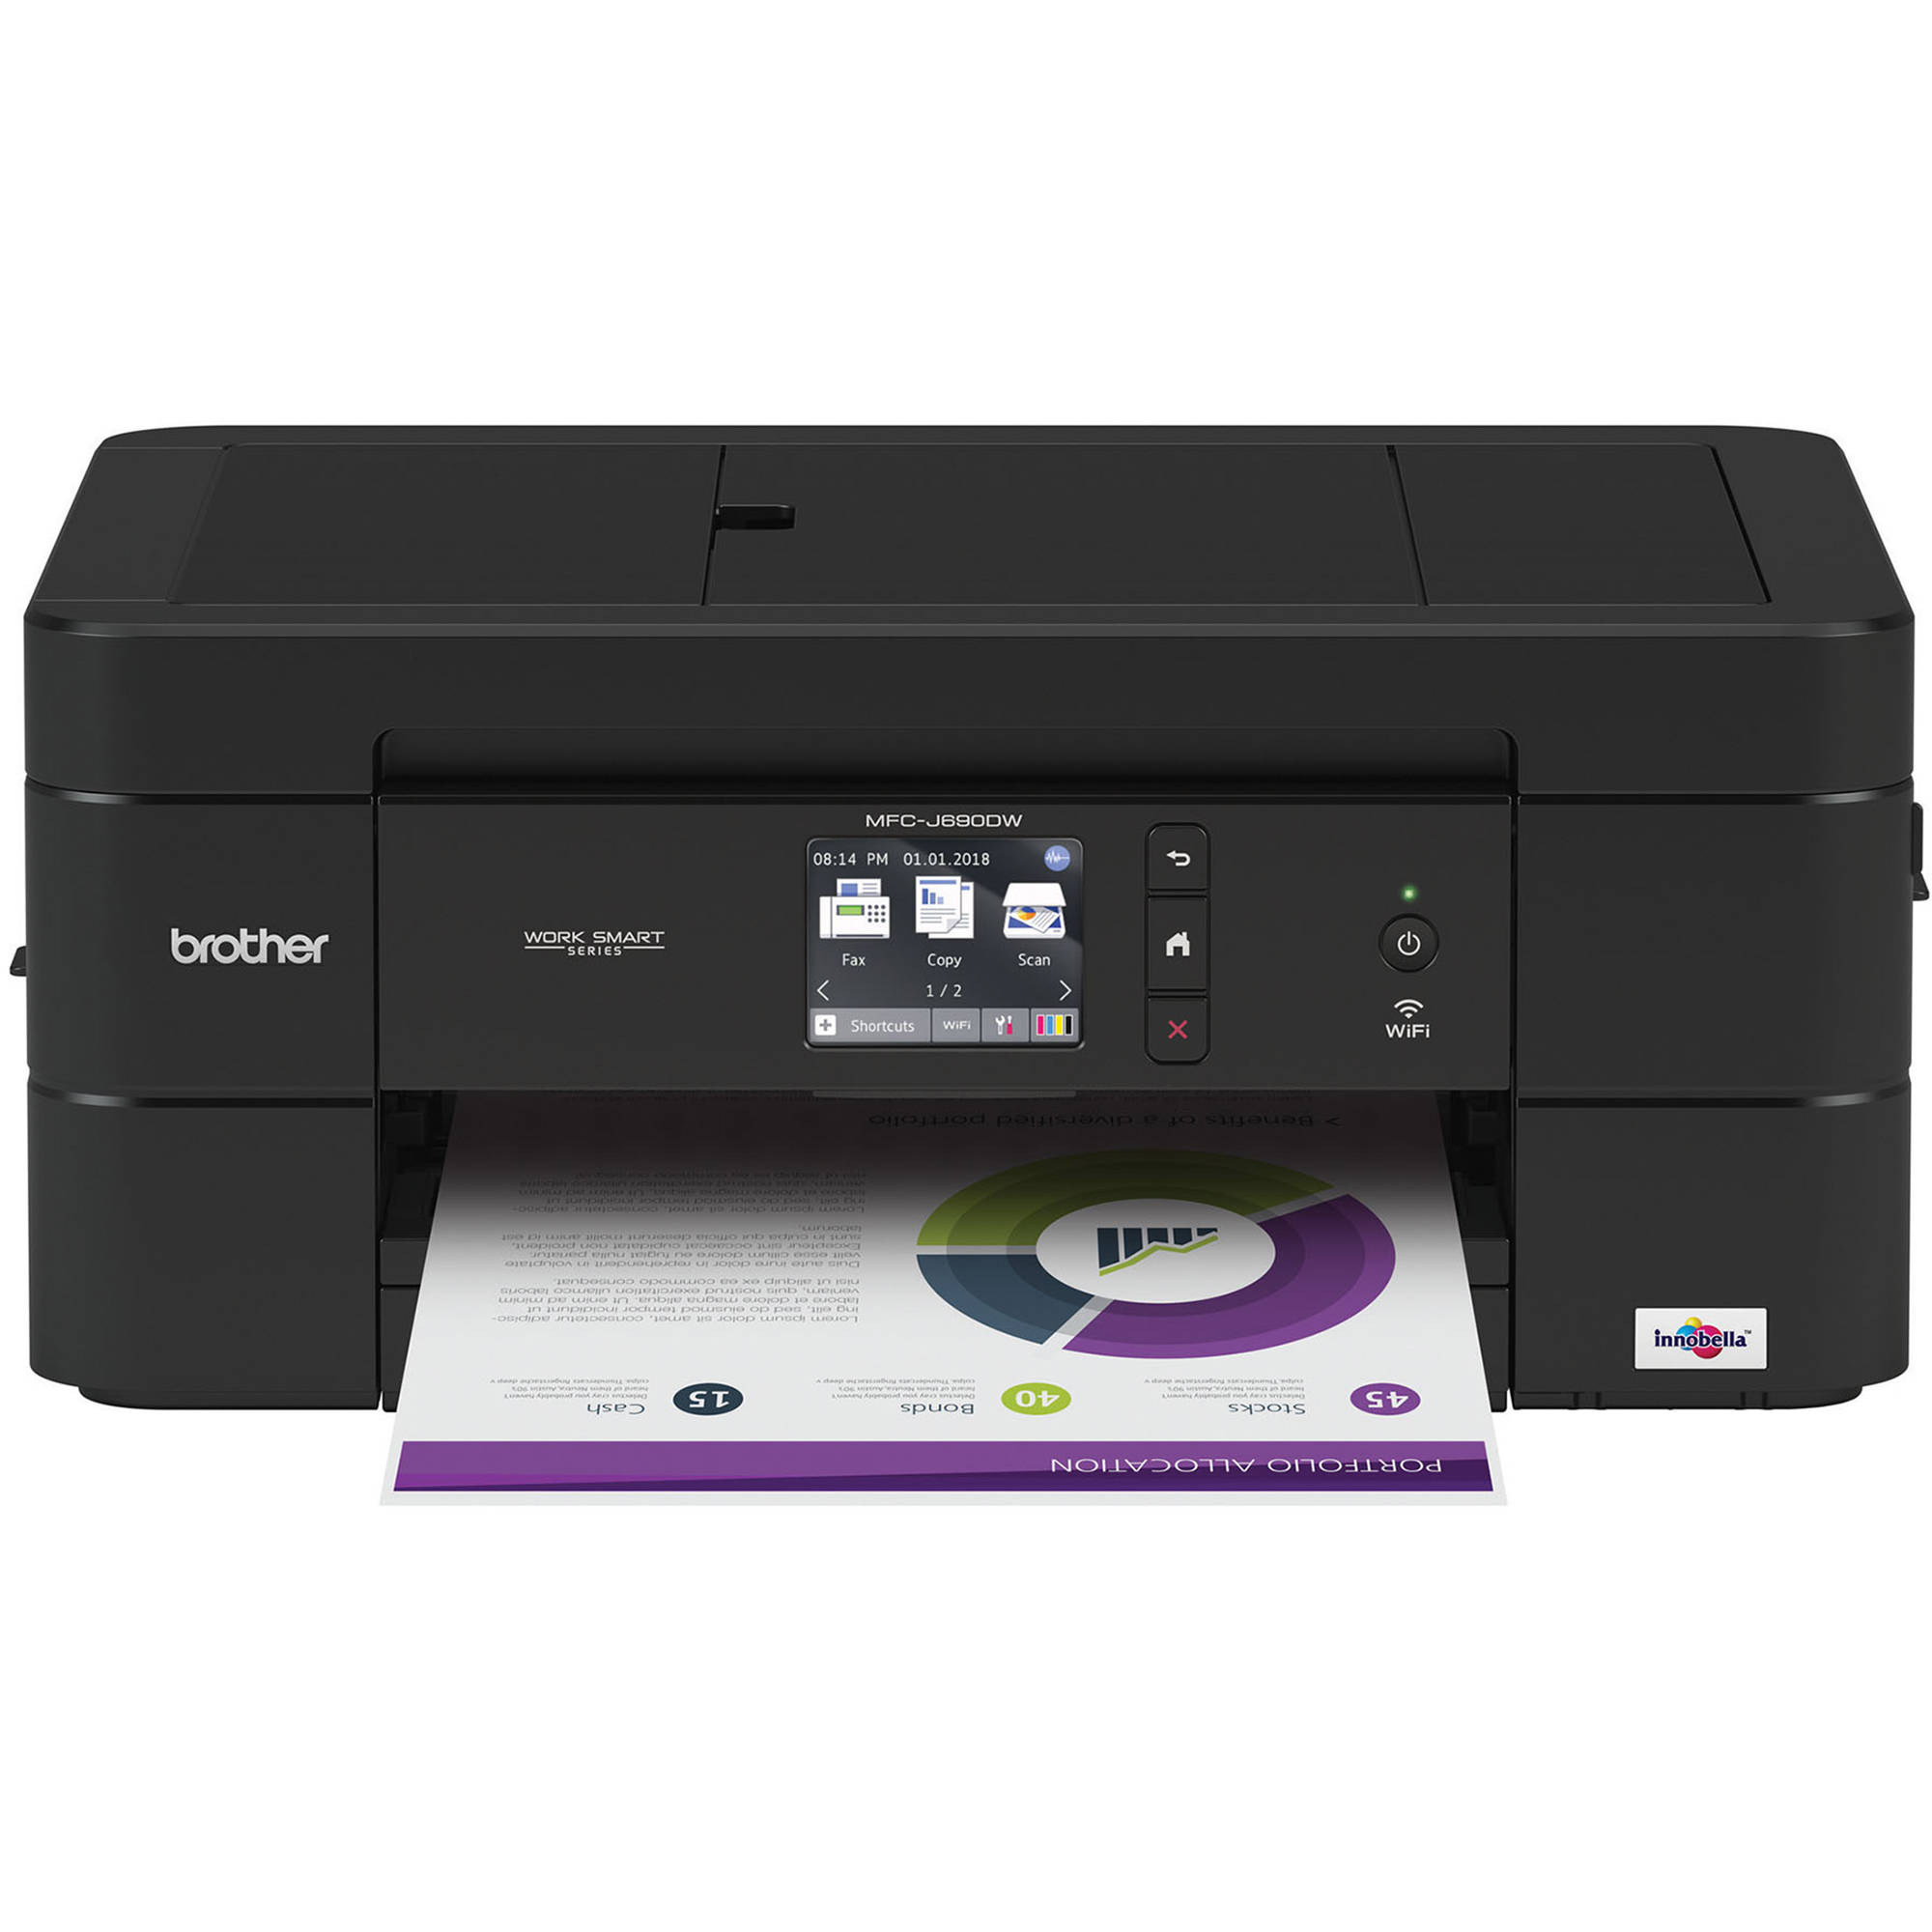 Brother Work Smart Series MFC-J690DW All-In-One Inkjet Printer